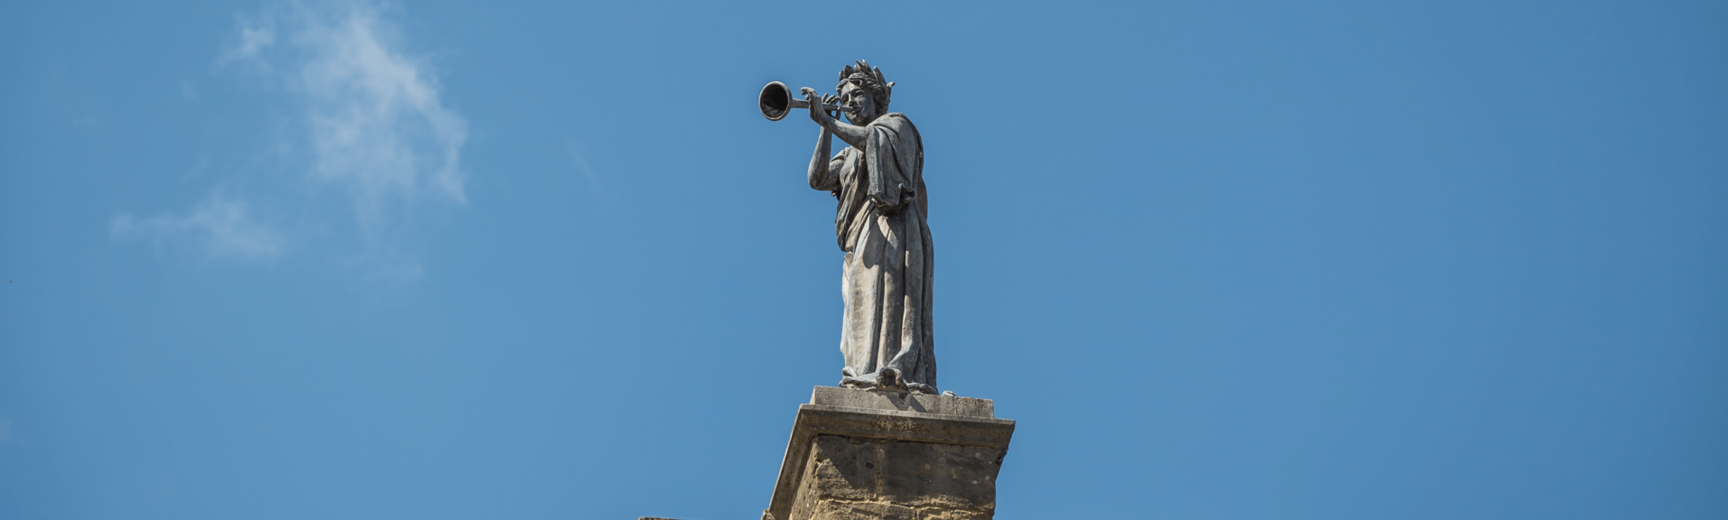 Statue of a woman against blue sky